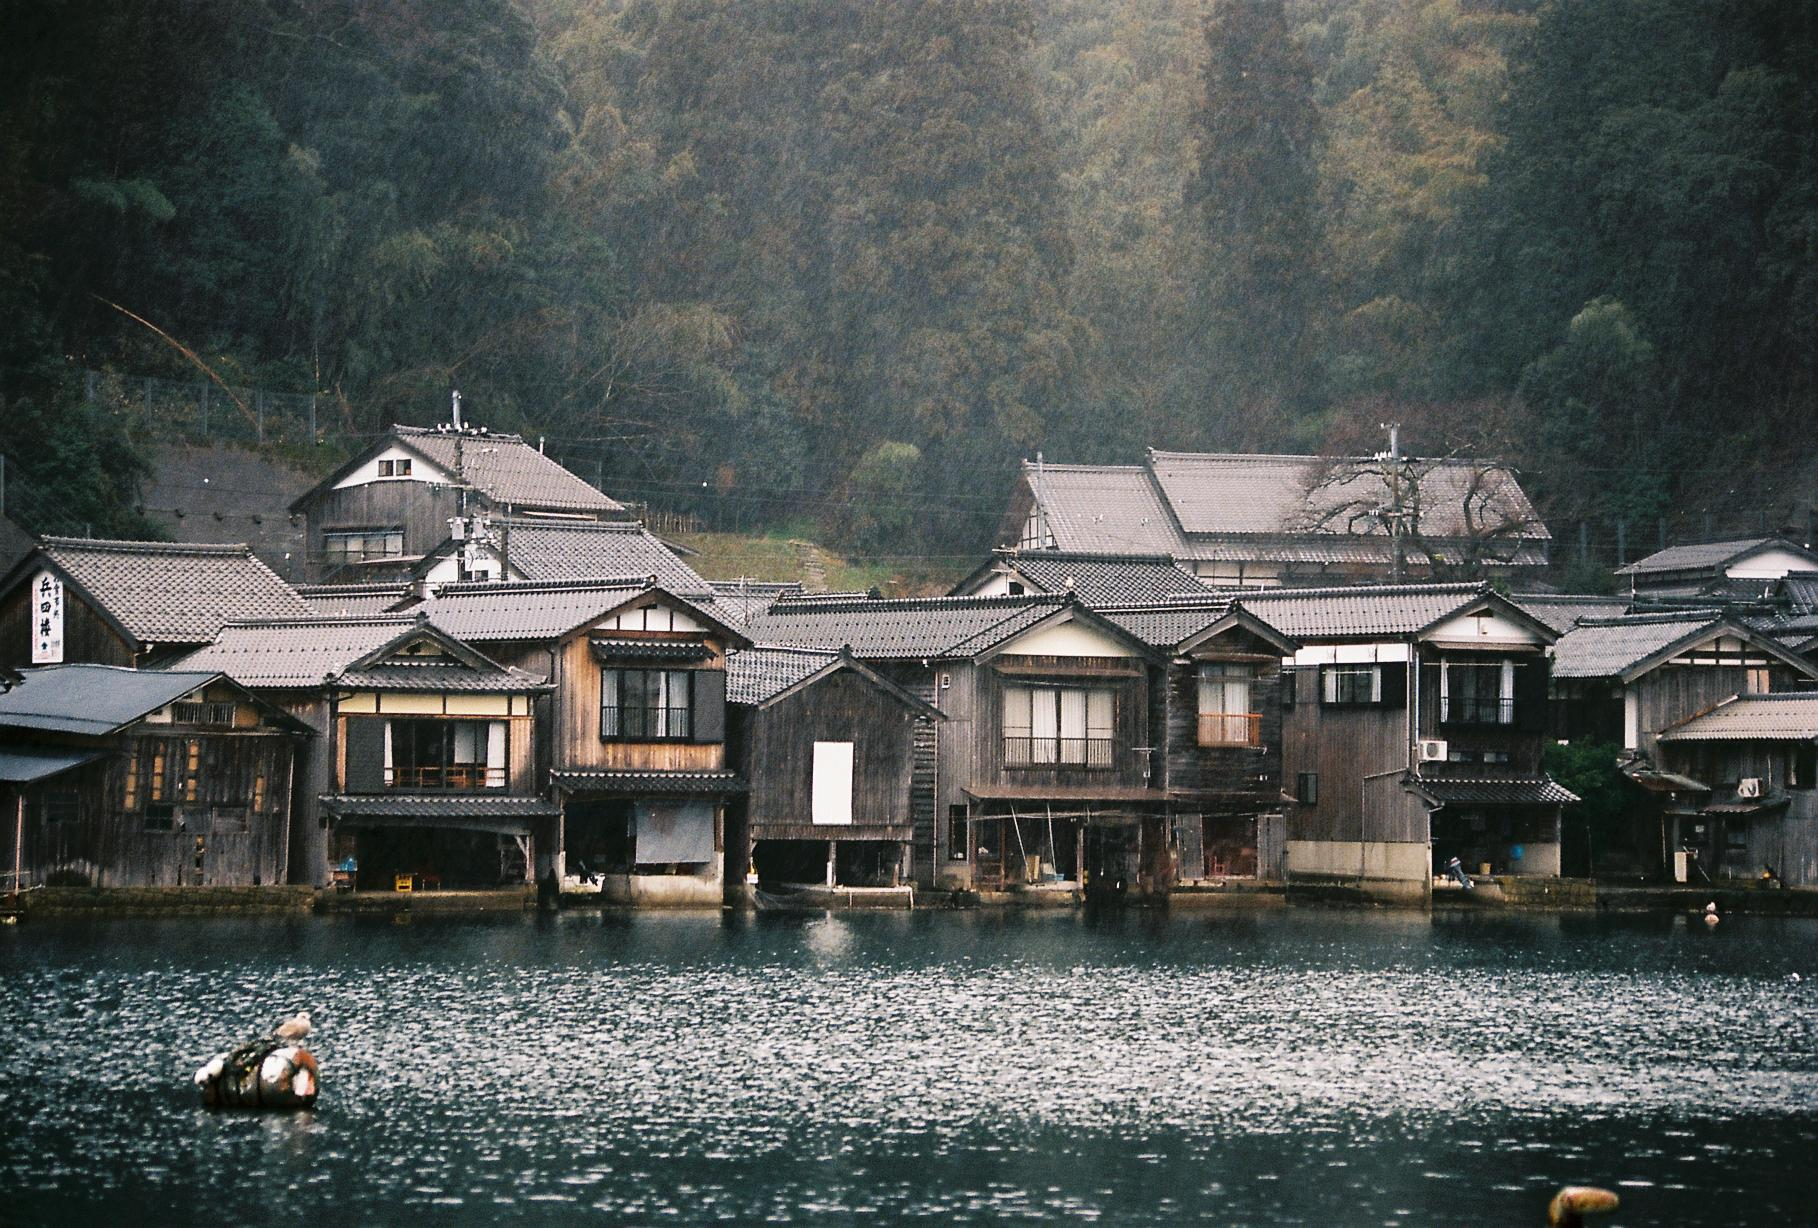 Ine Japan FIshing Village Old House